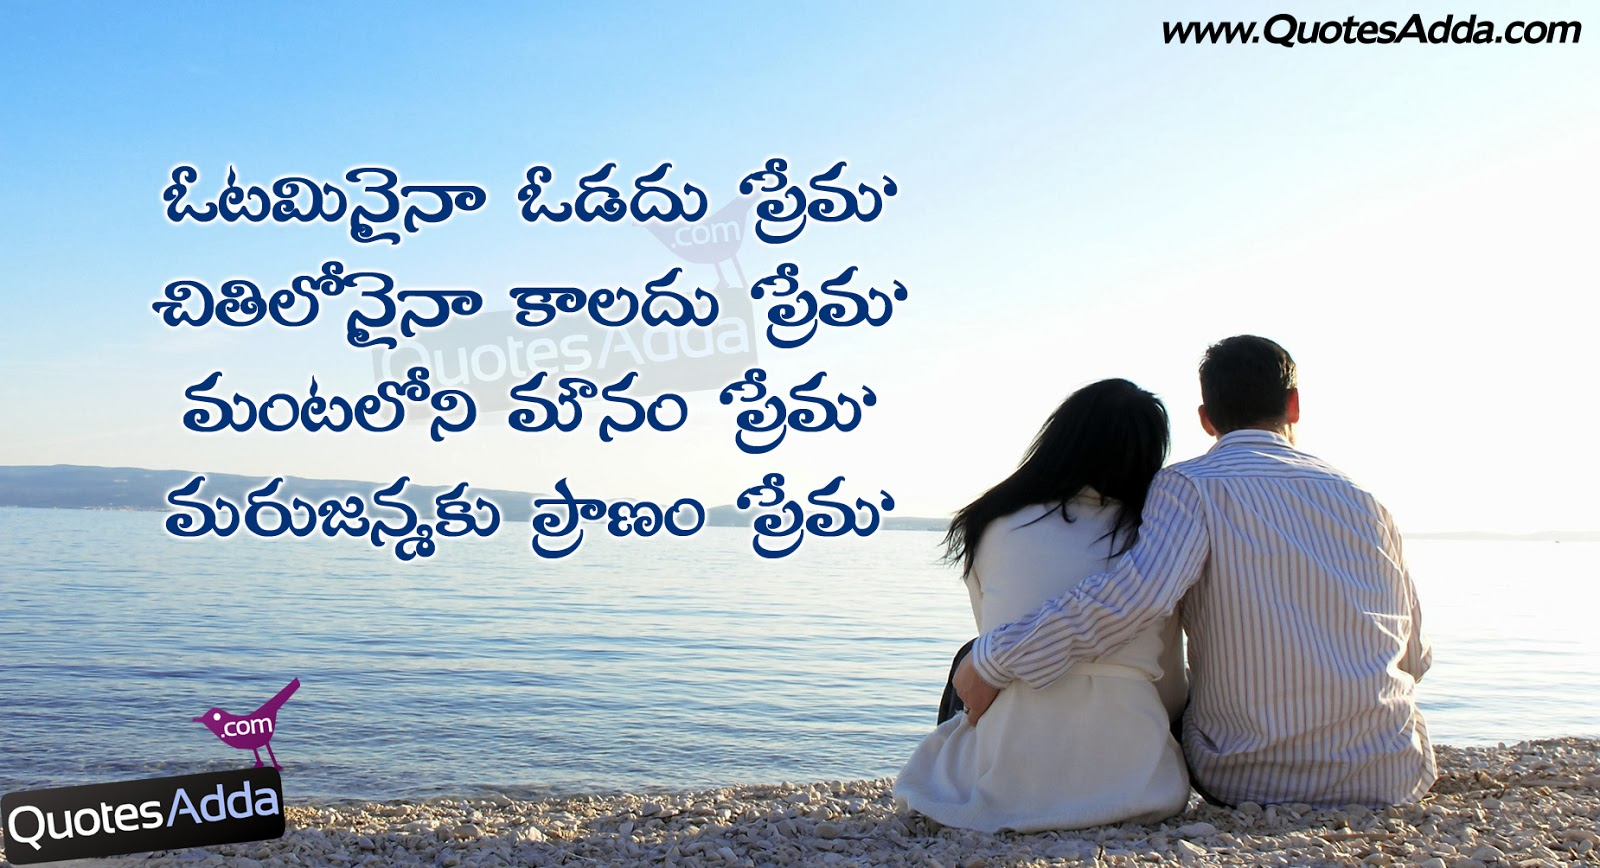 Love Quotes For Husband: Romantic Quotes For Husband In Telugu